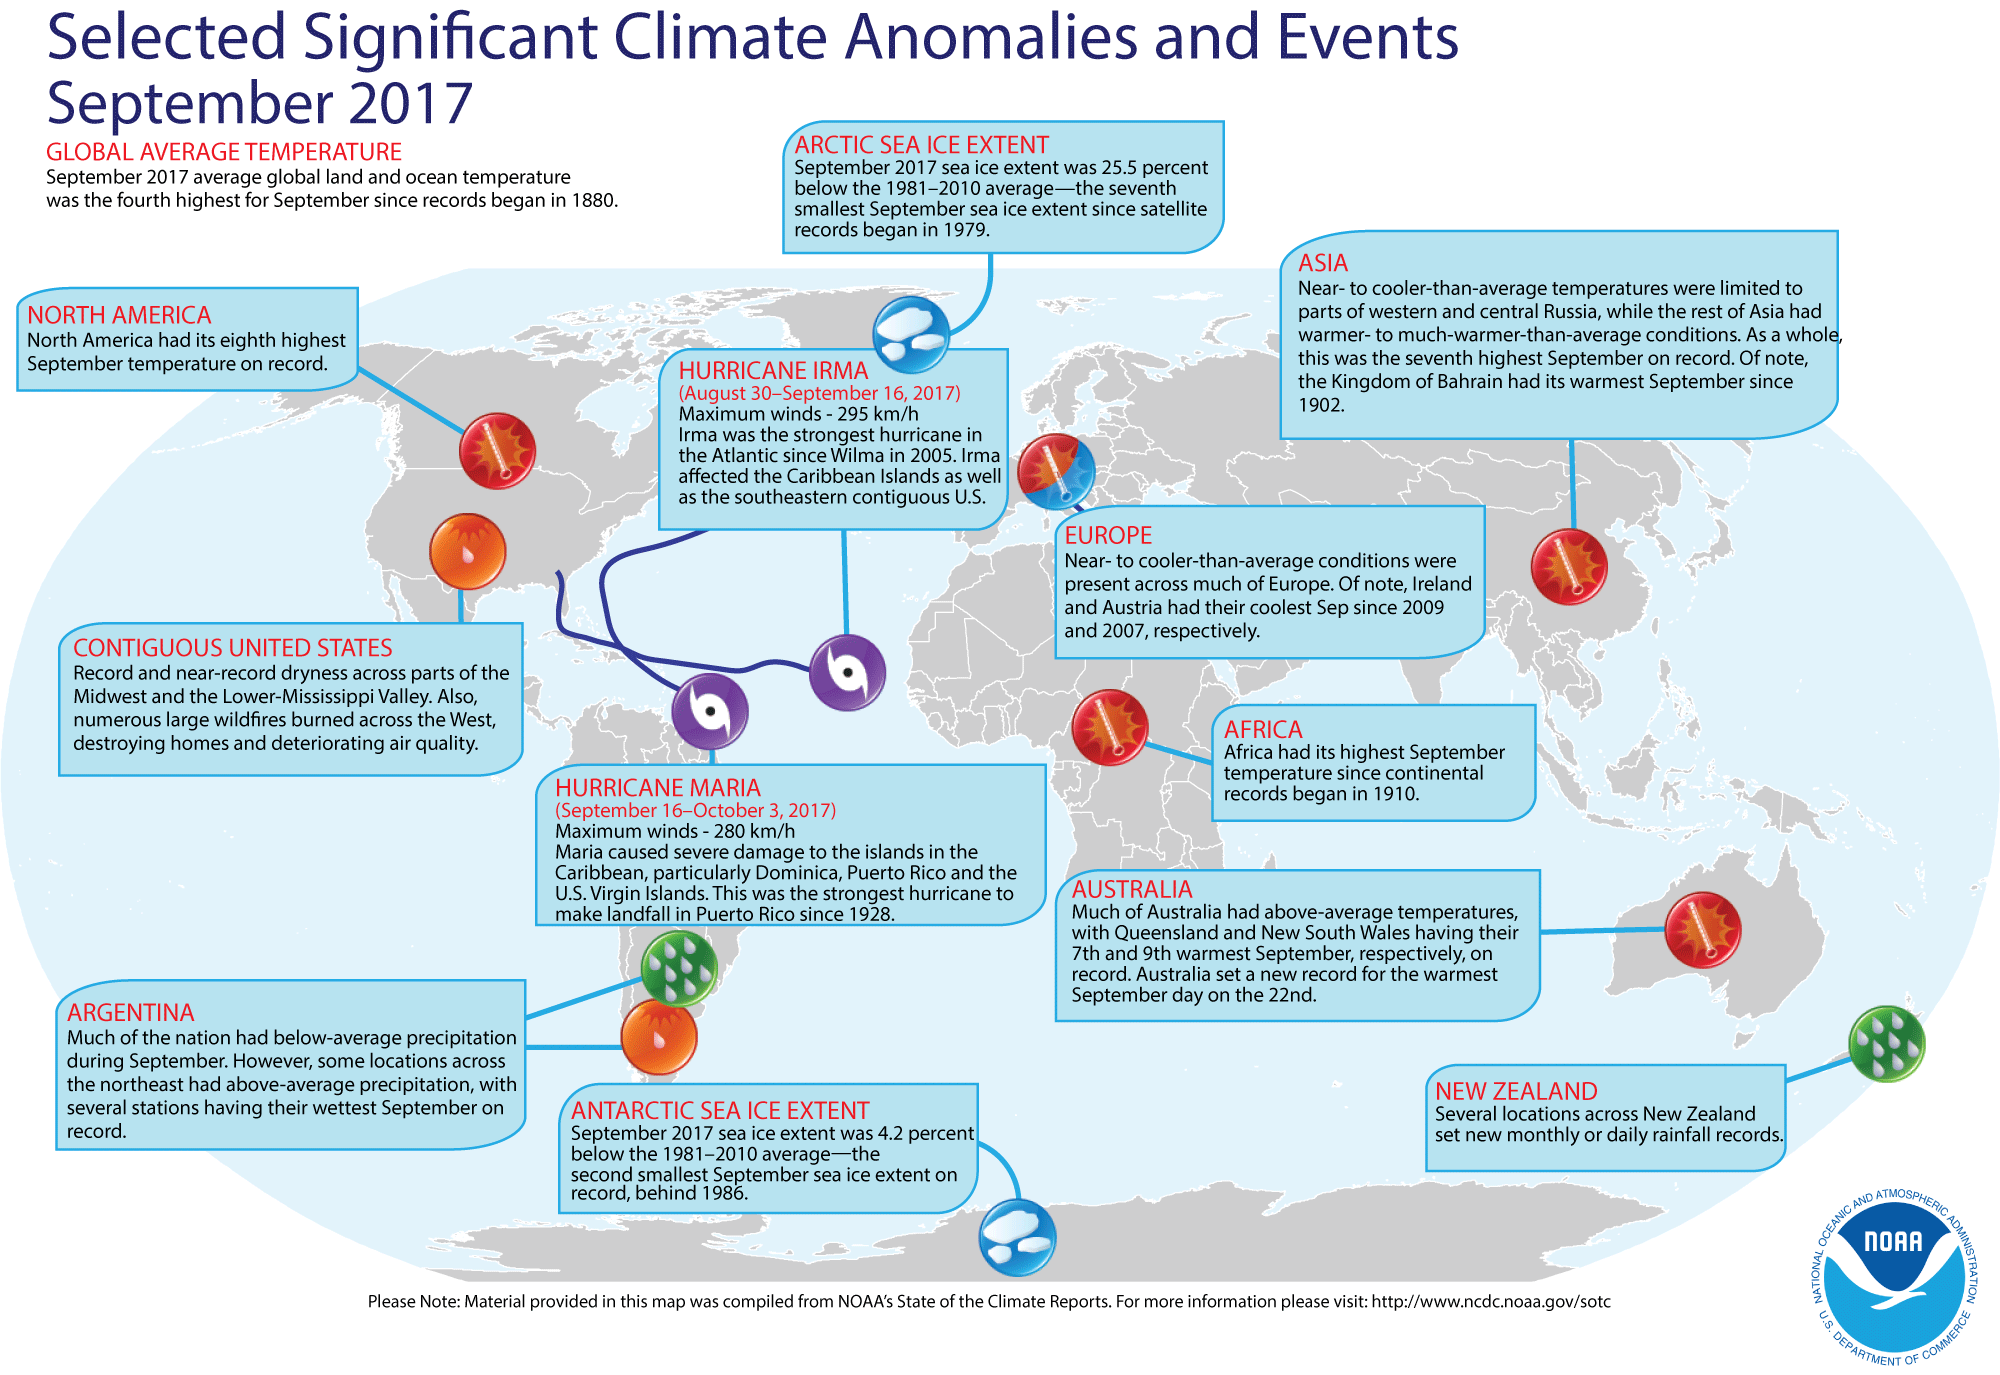 Map of global selected significant climate anomalies and events for September 2017